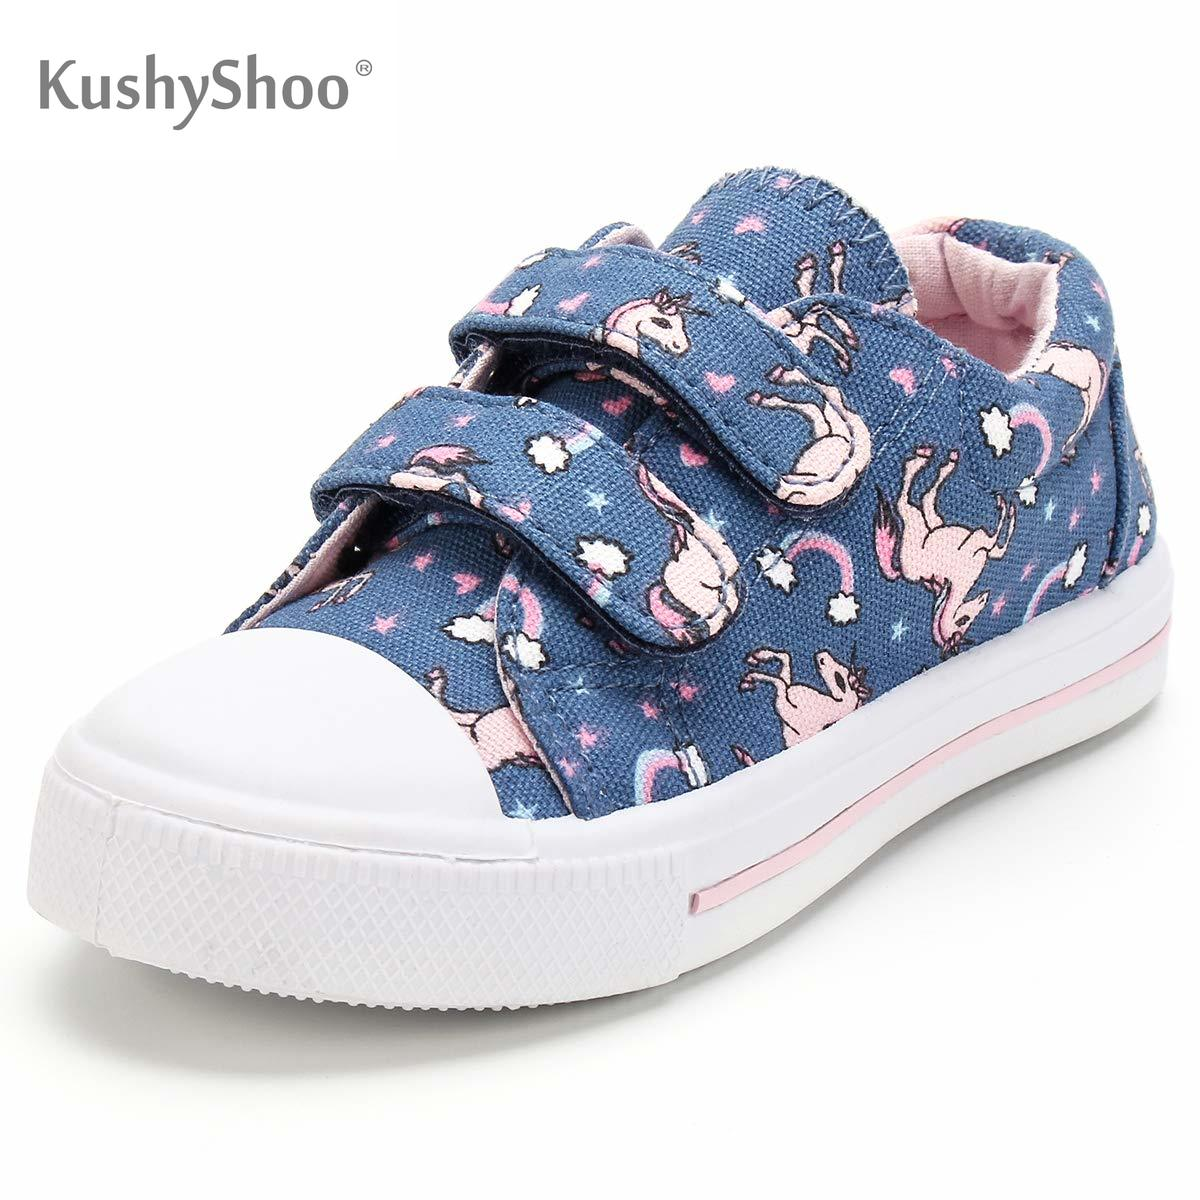 KushyShoo Kids Shoes Toddler Sneakers Unicorn Dual Buckle Strap Cute Boy Shoes Children Sneakers Girl Casual Canvas Shoes